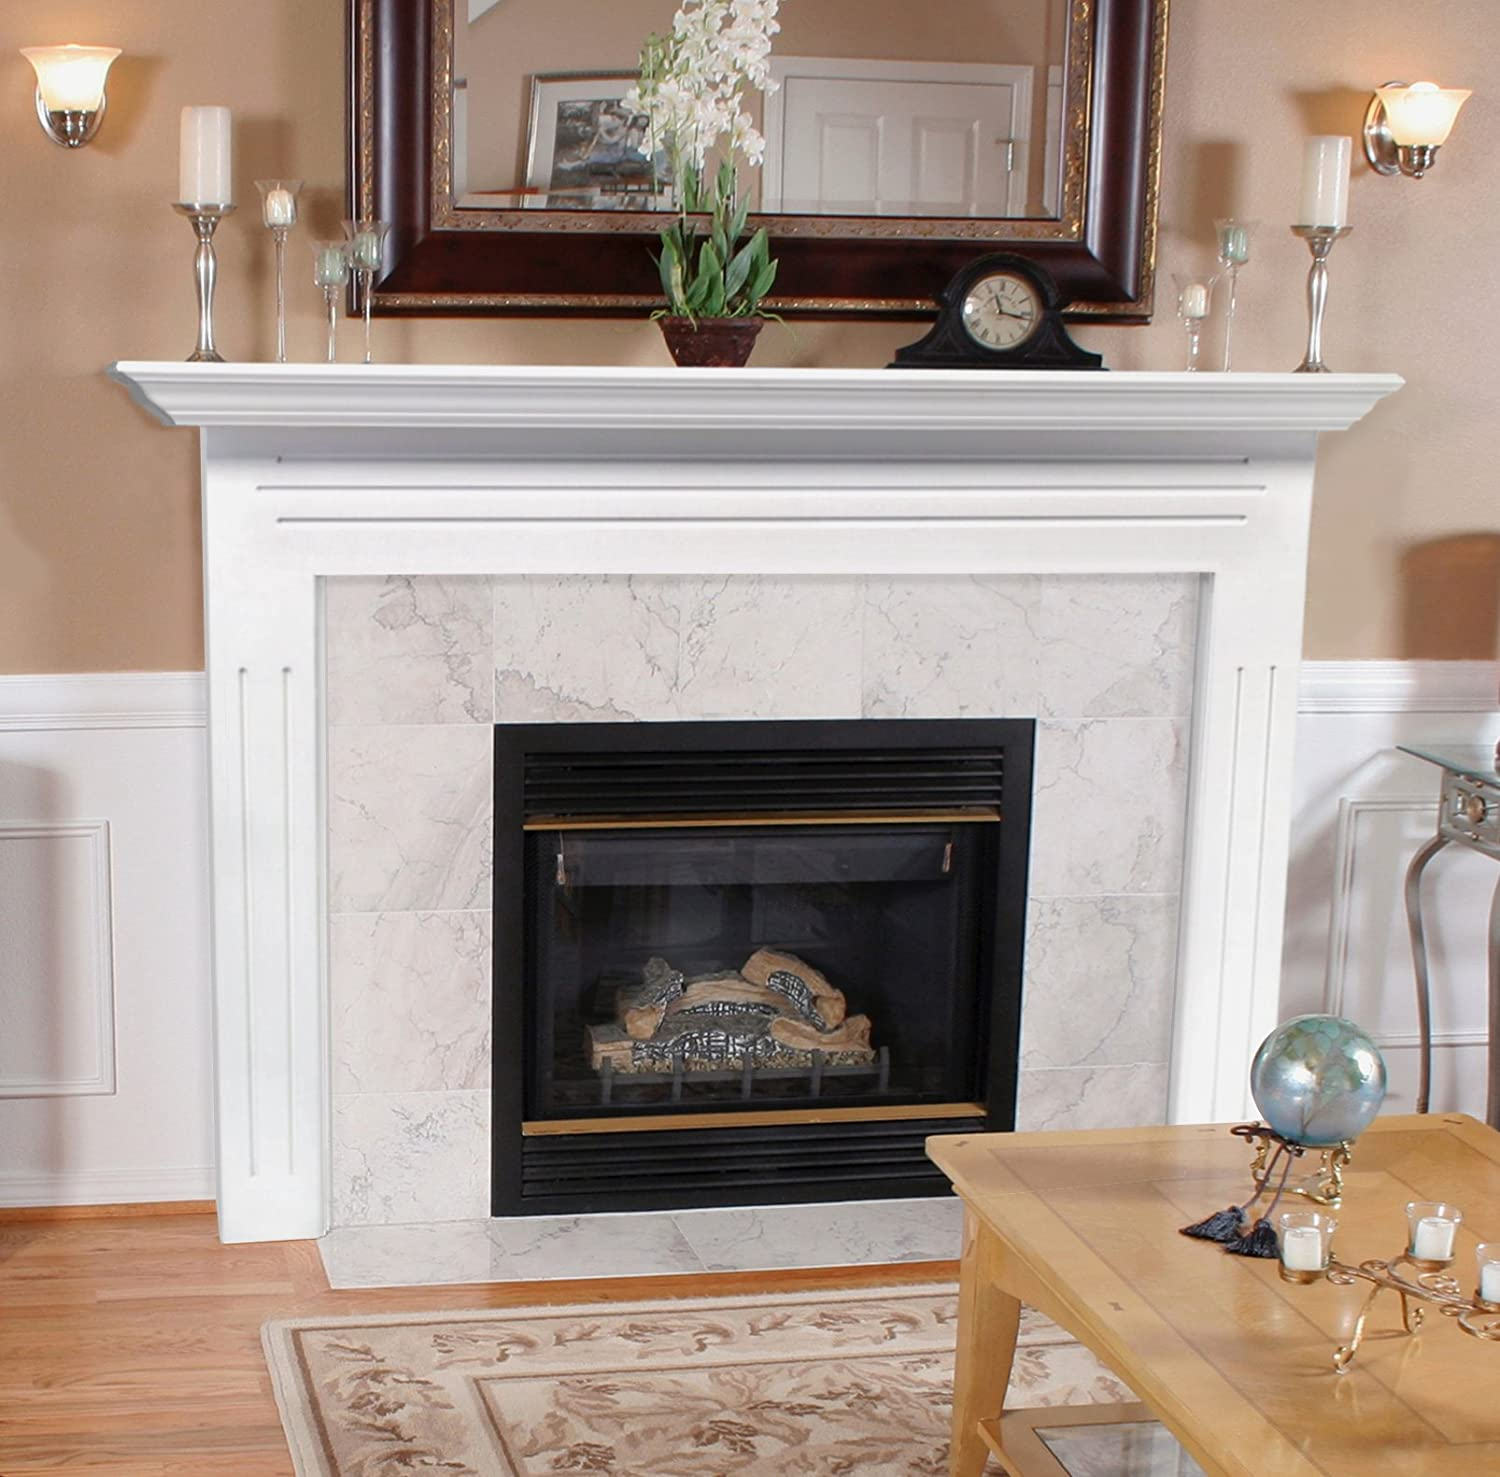 Amazon.com: Pearl Mantels 510-48 Newport 48-Inch Fireplace Mantel ...